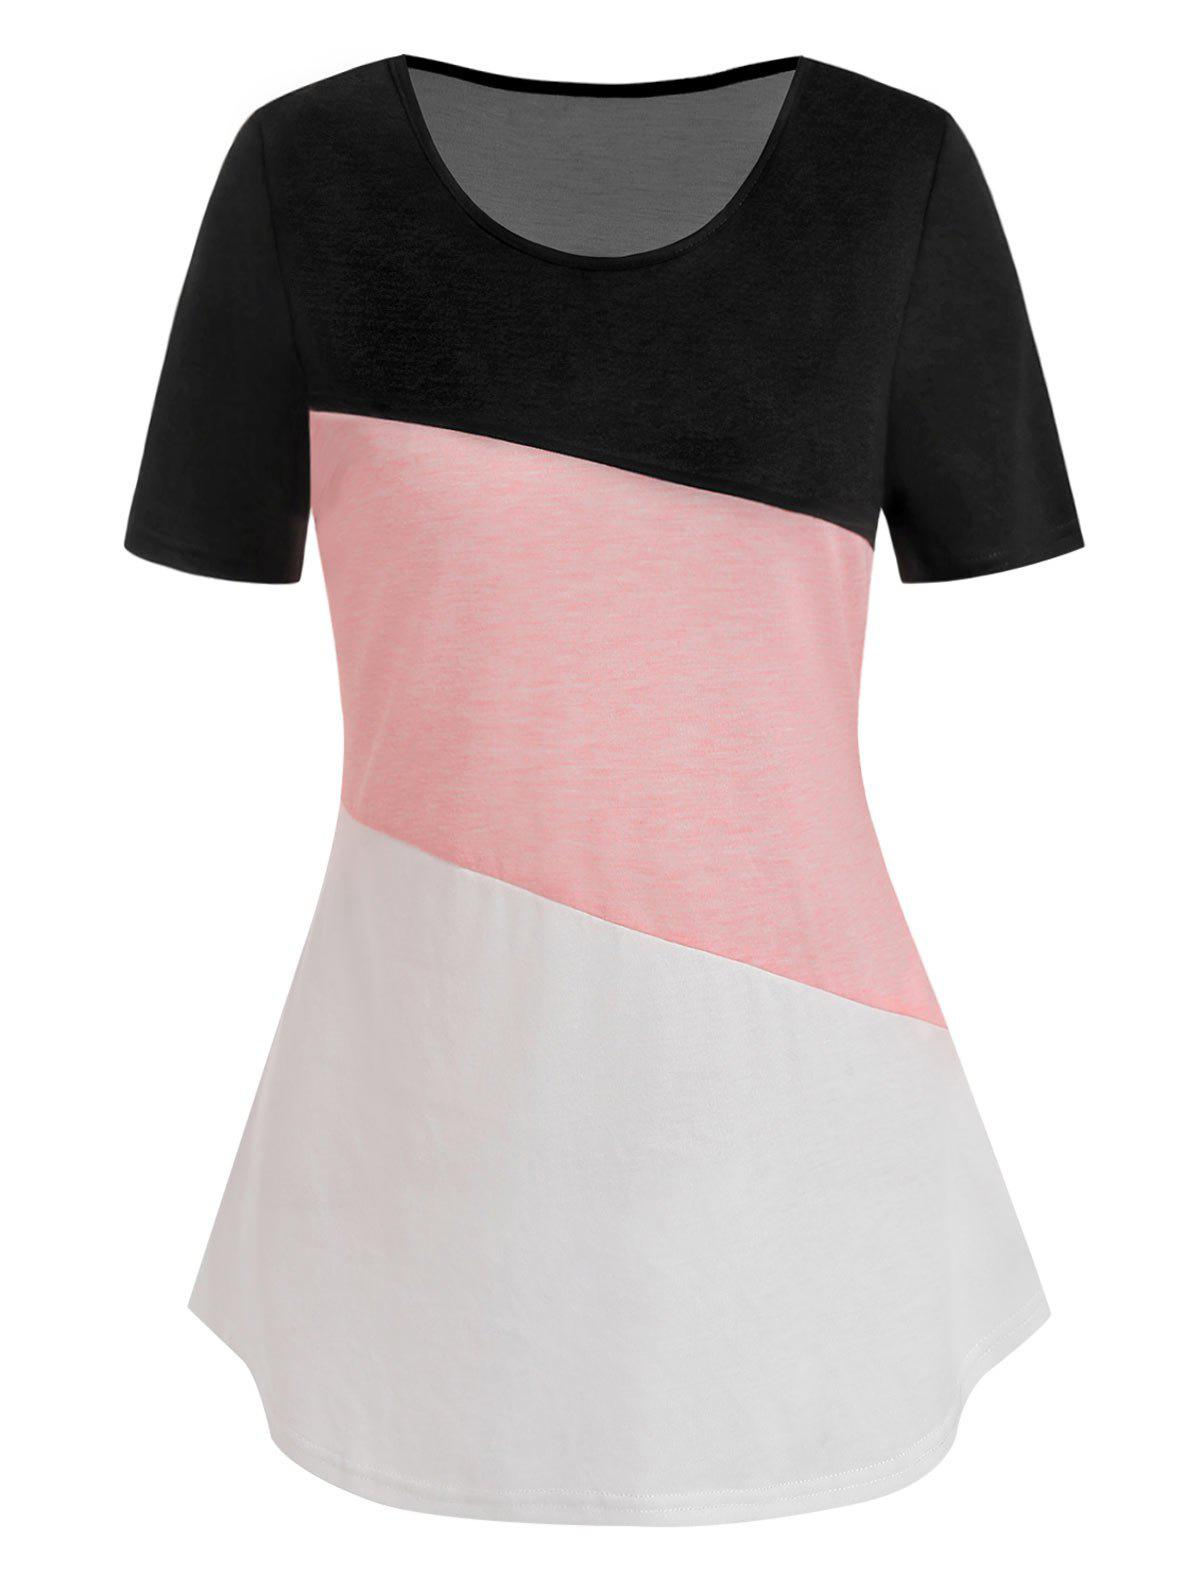 Chic Curved Hem Contrast Heathered T-shirt